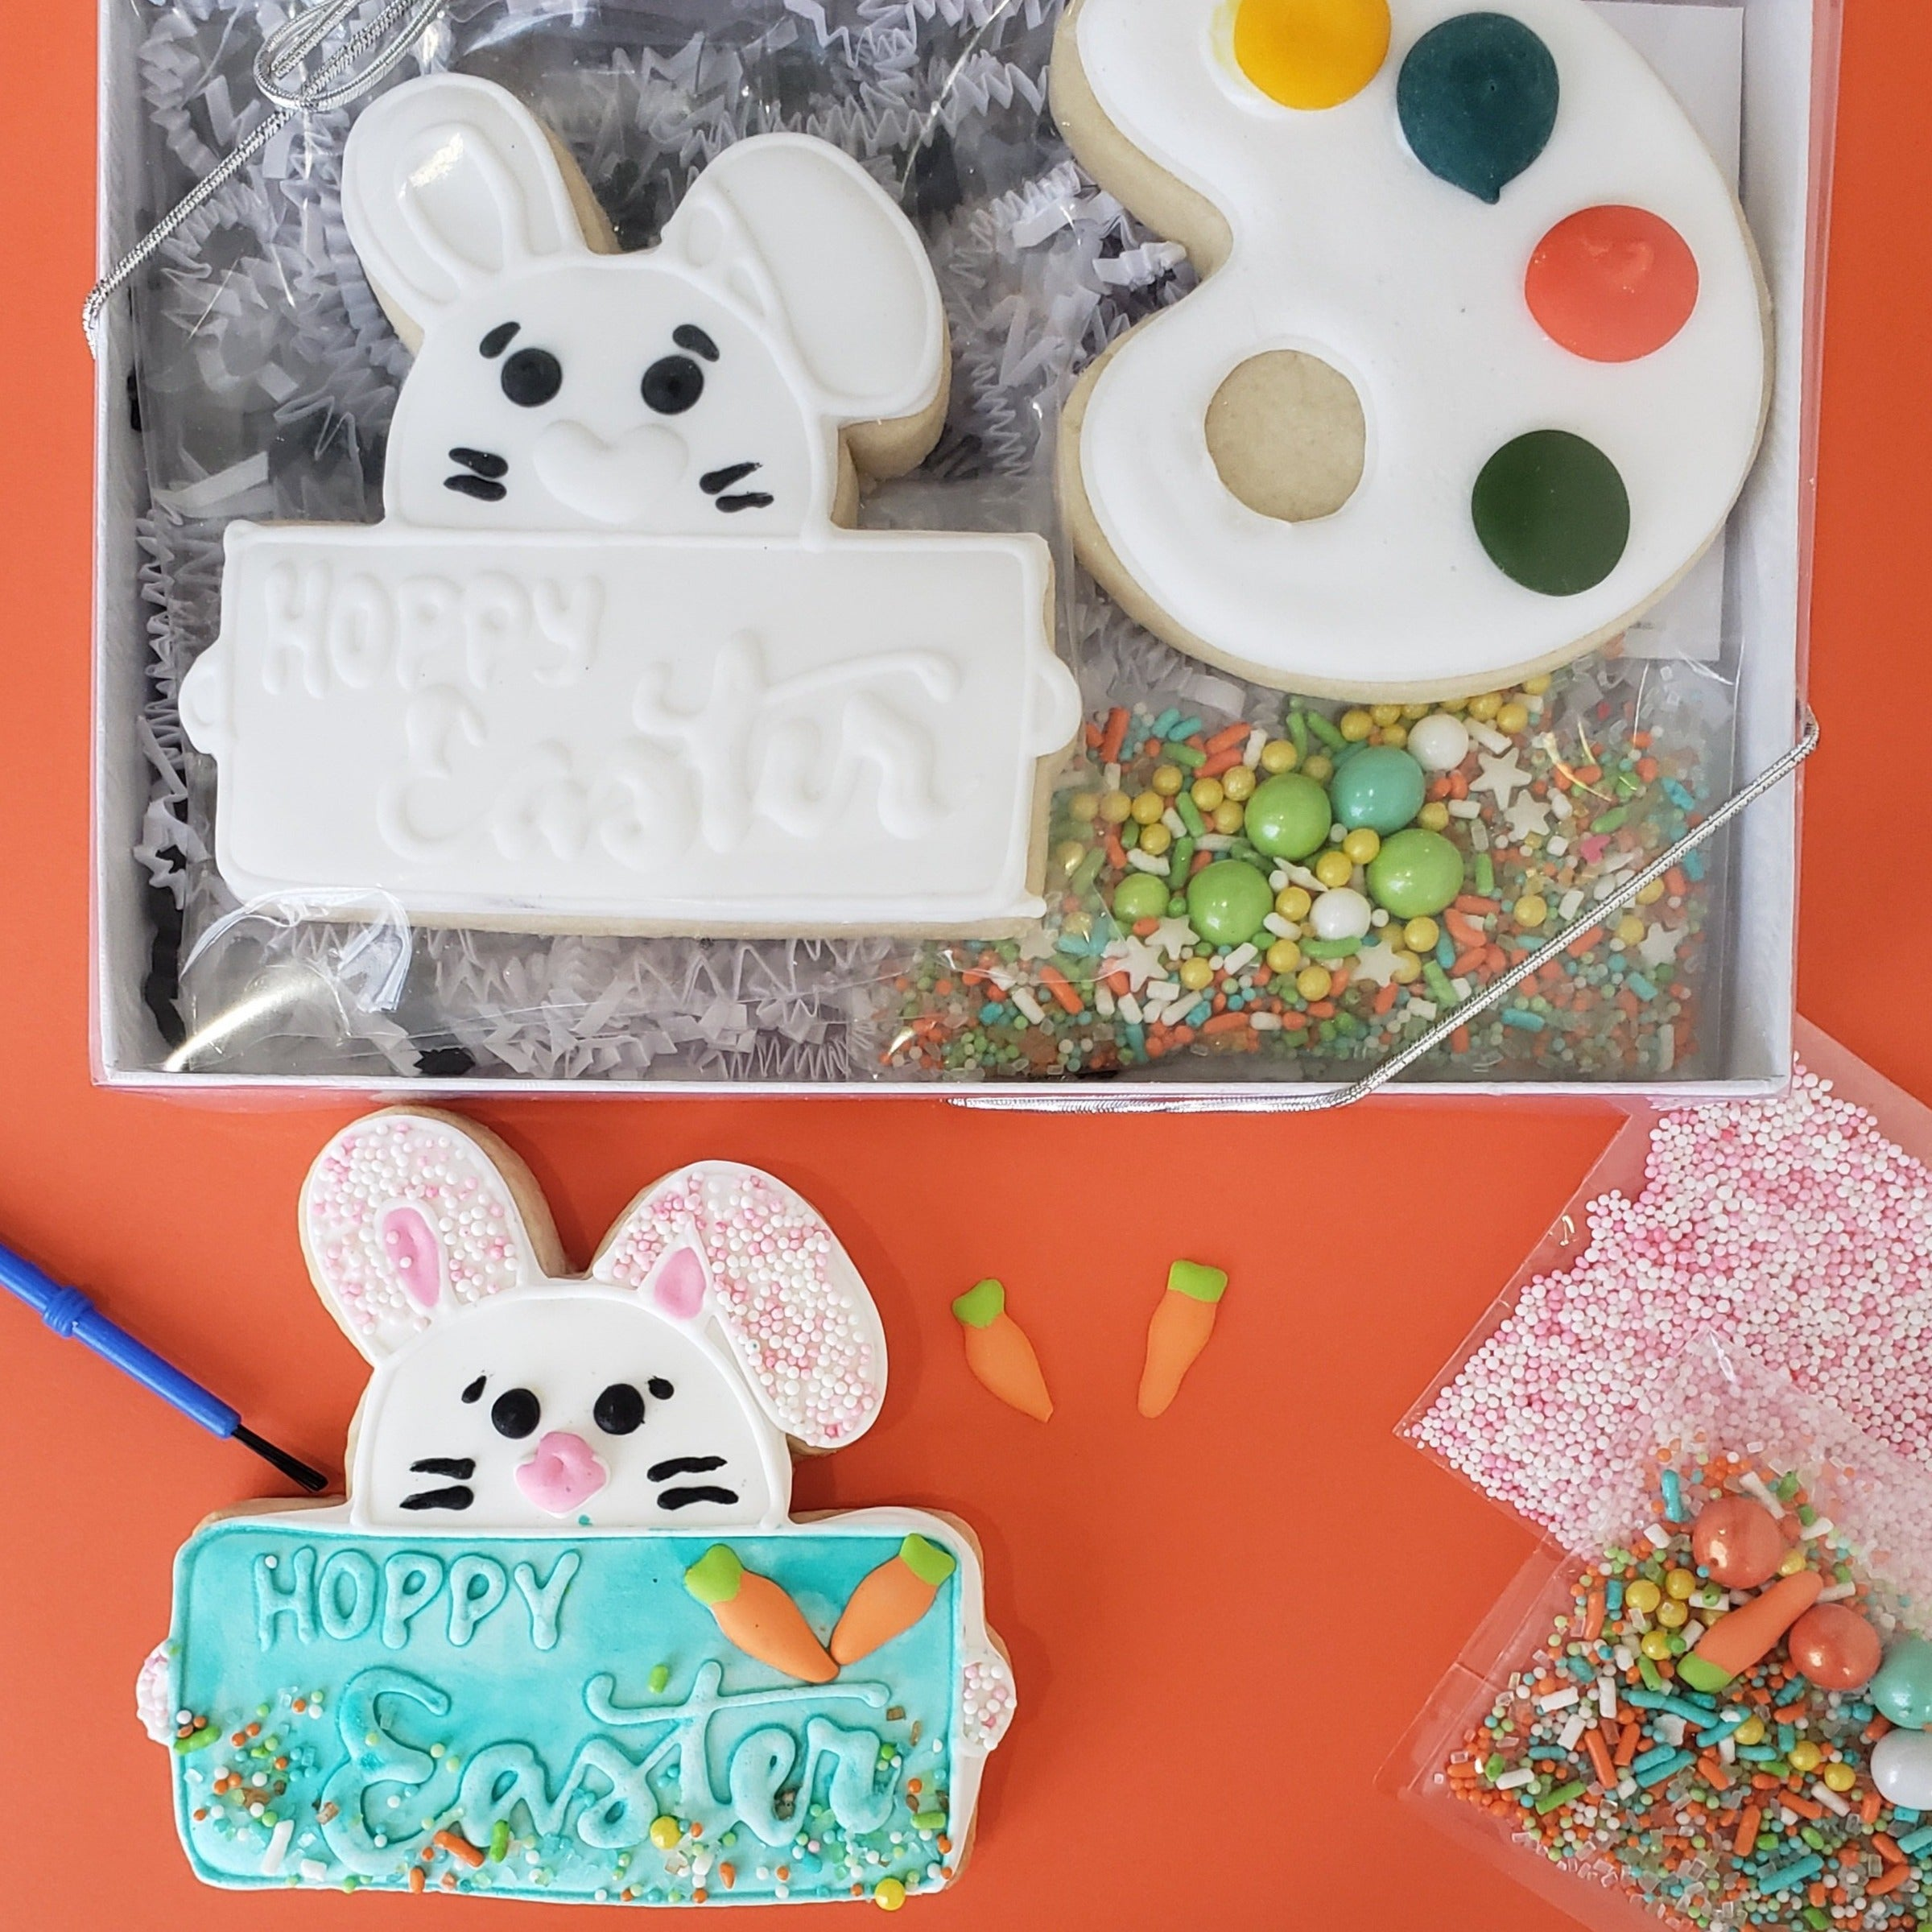 """Hoppy Easter"" Happy Easter Cookie Decorating Kit"